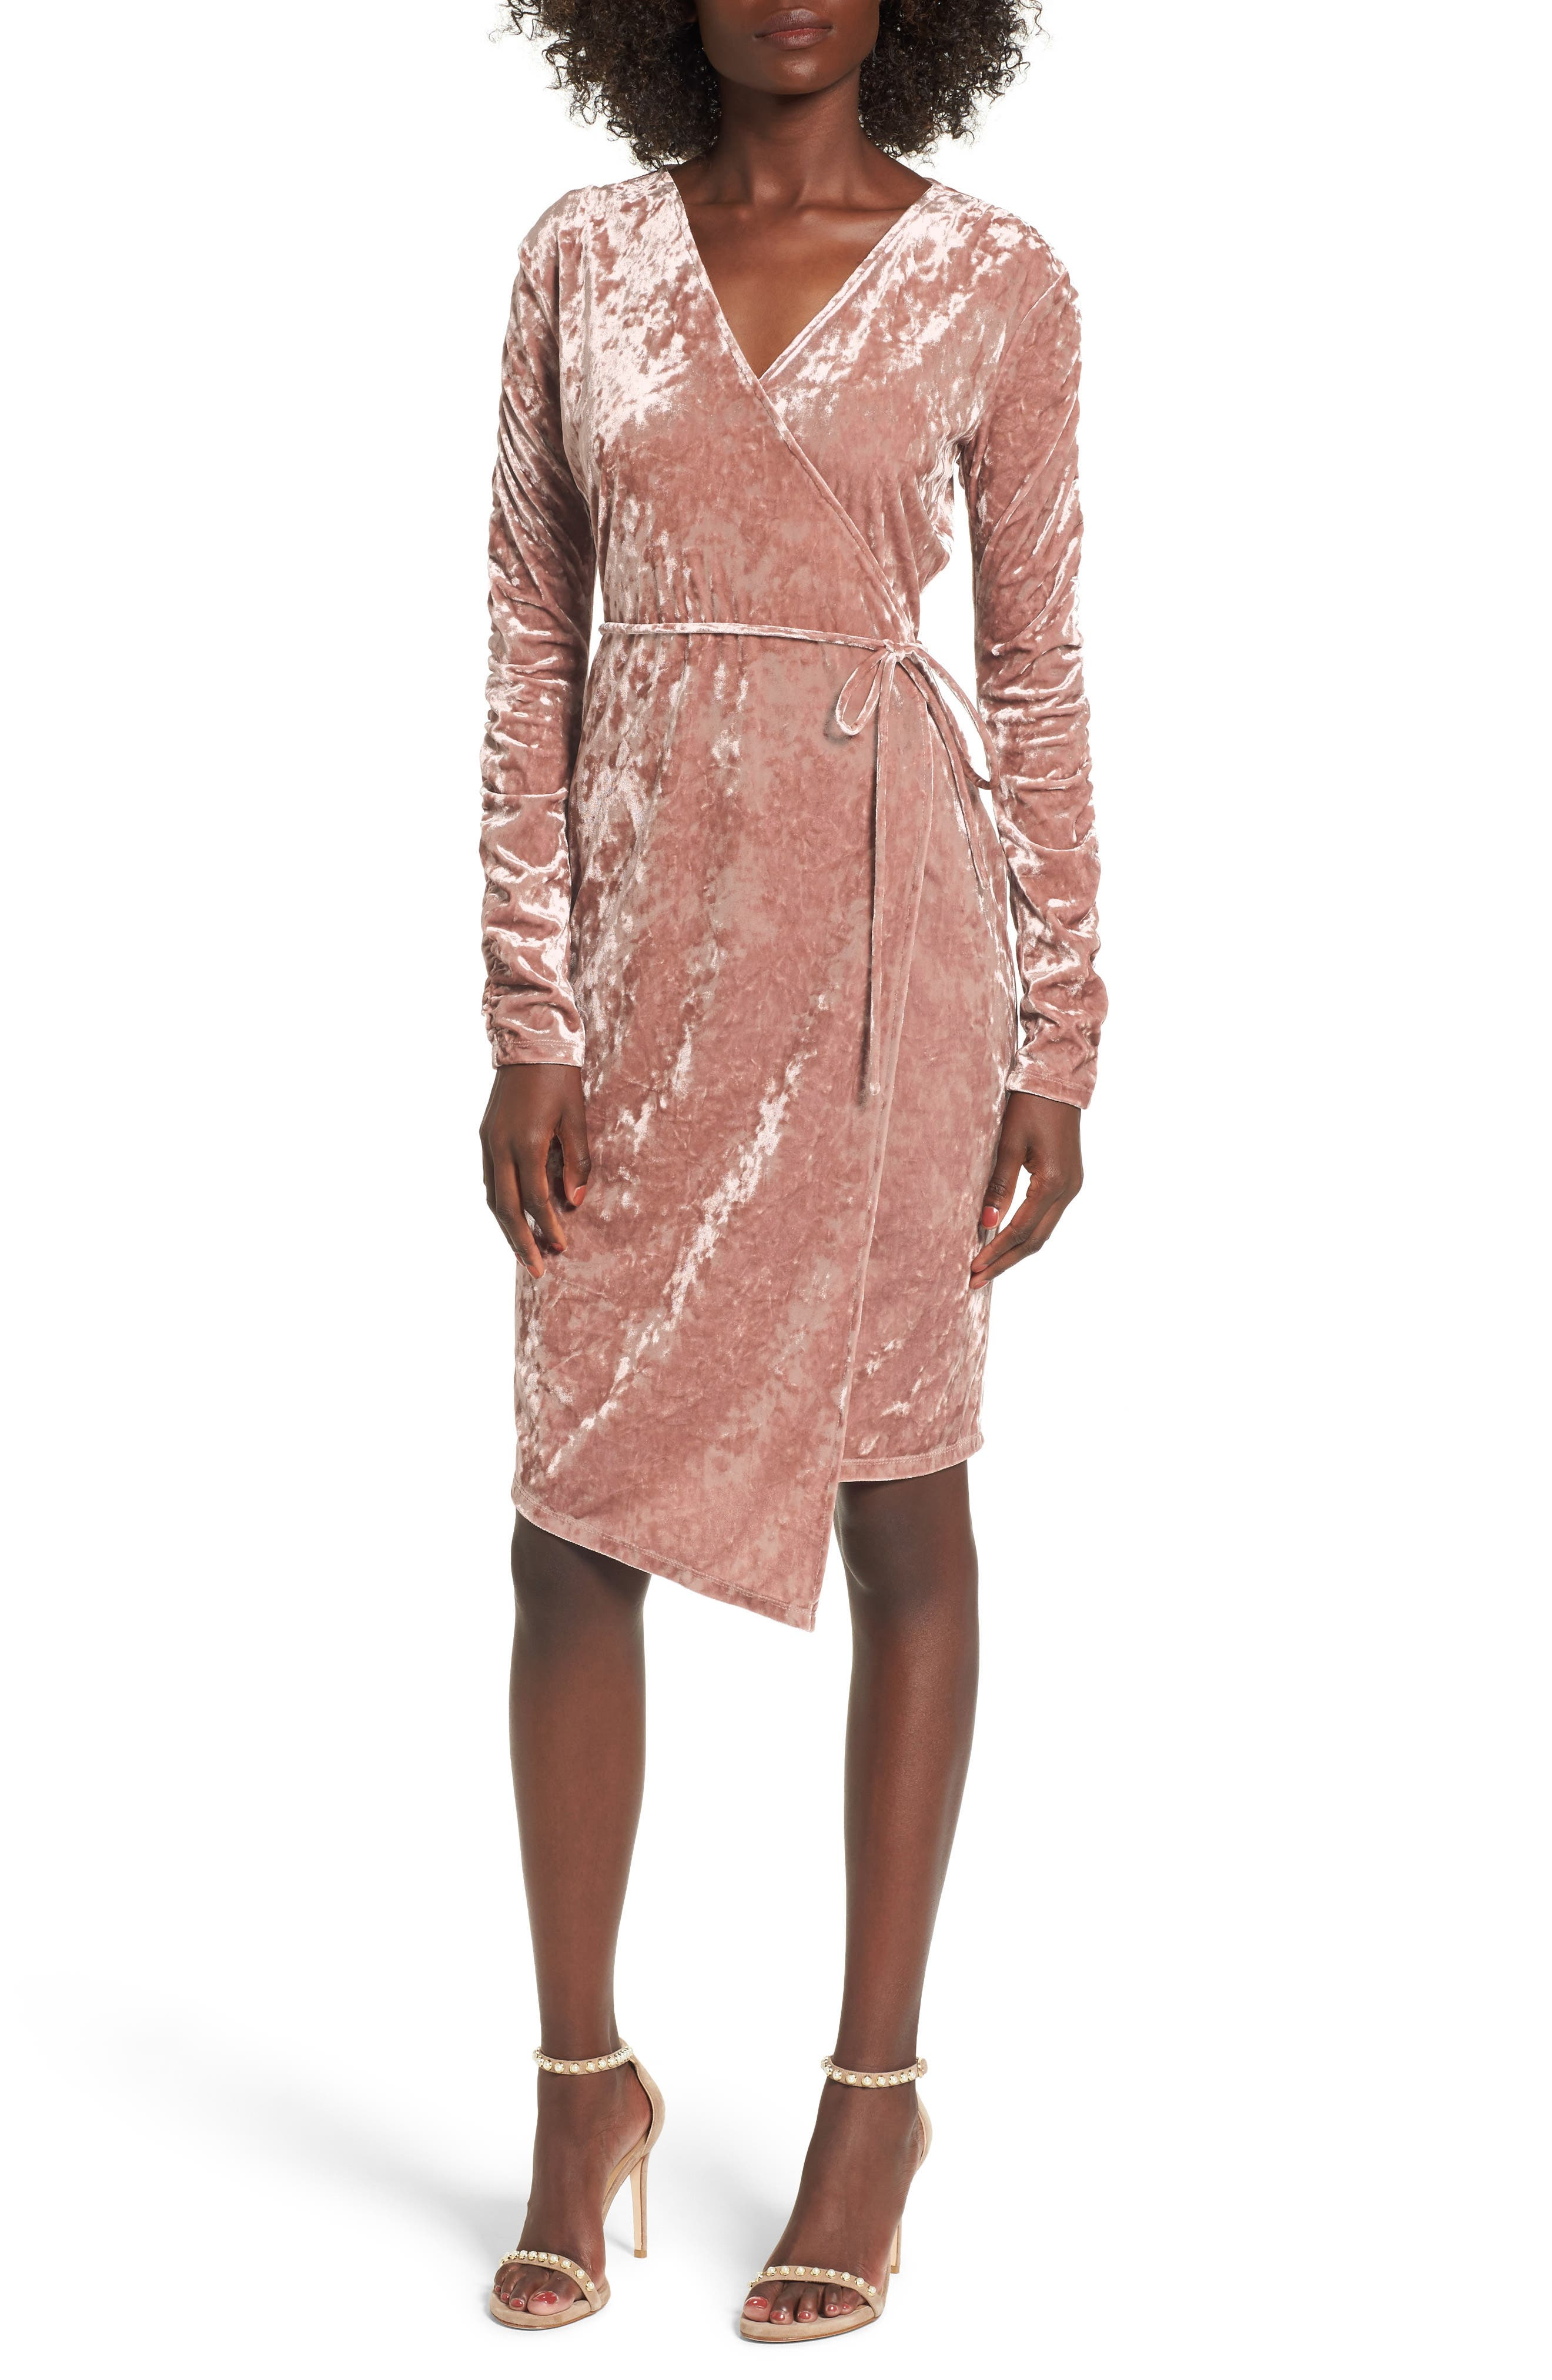 Cocktail dress nordstrom over the knee - Style dresses 2018